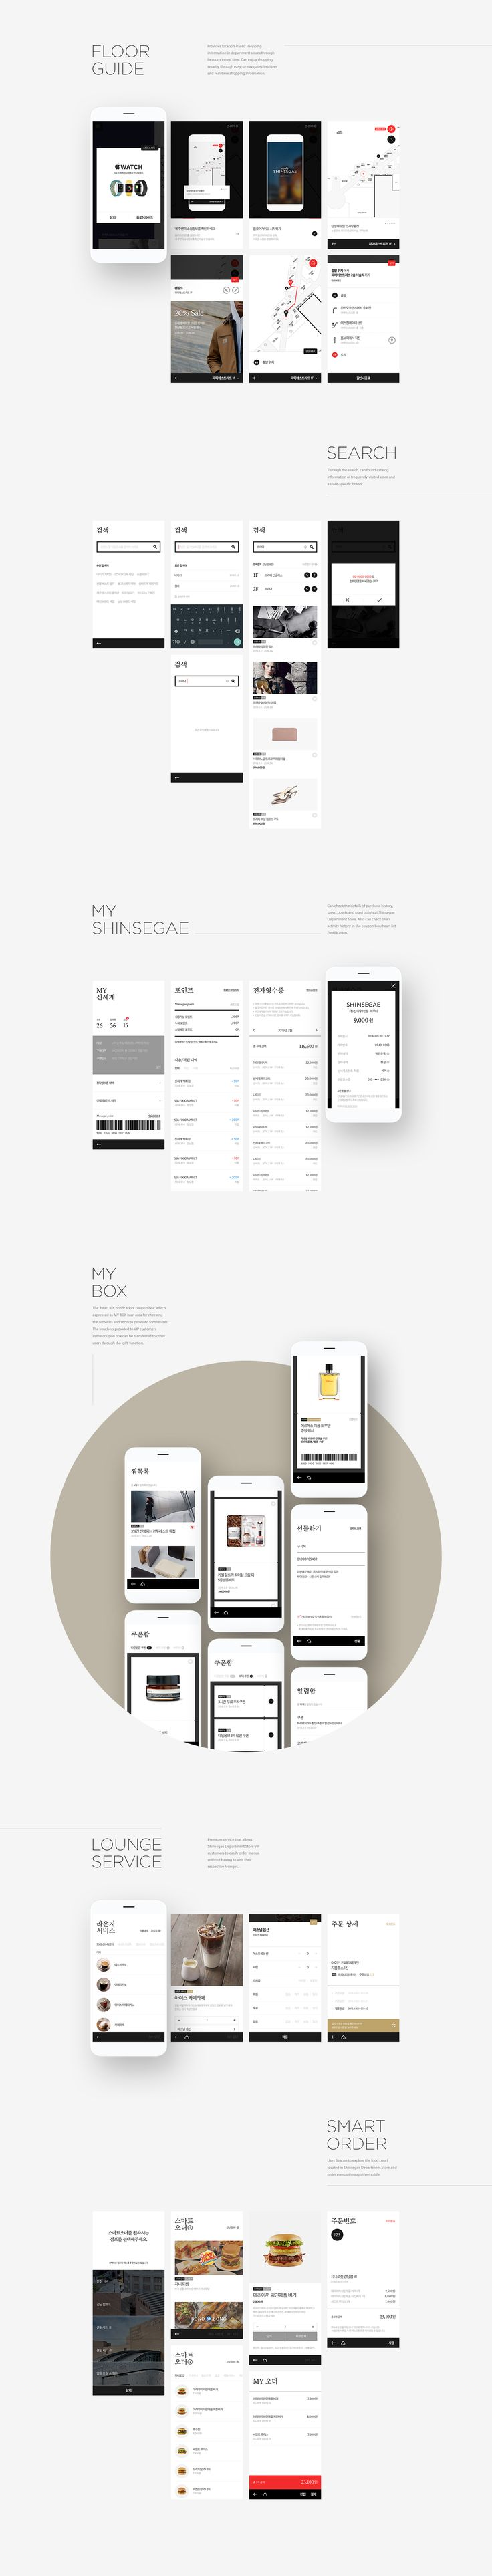 Shinsegae Department Store Mobile App on Behance